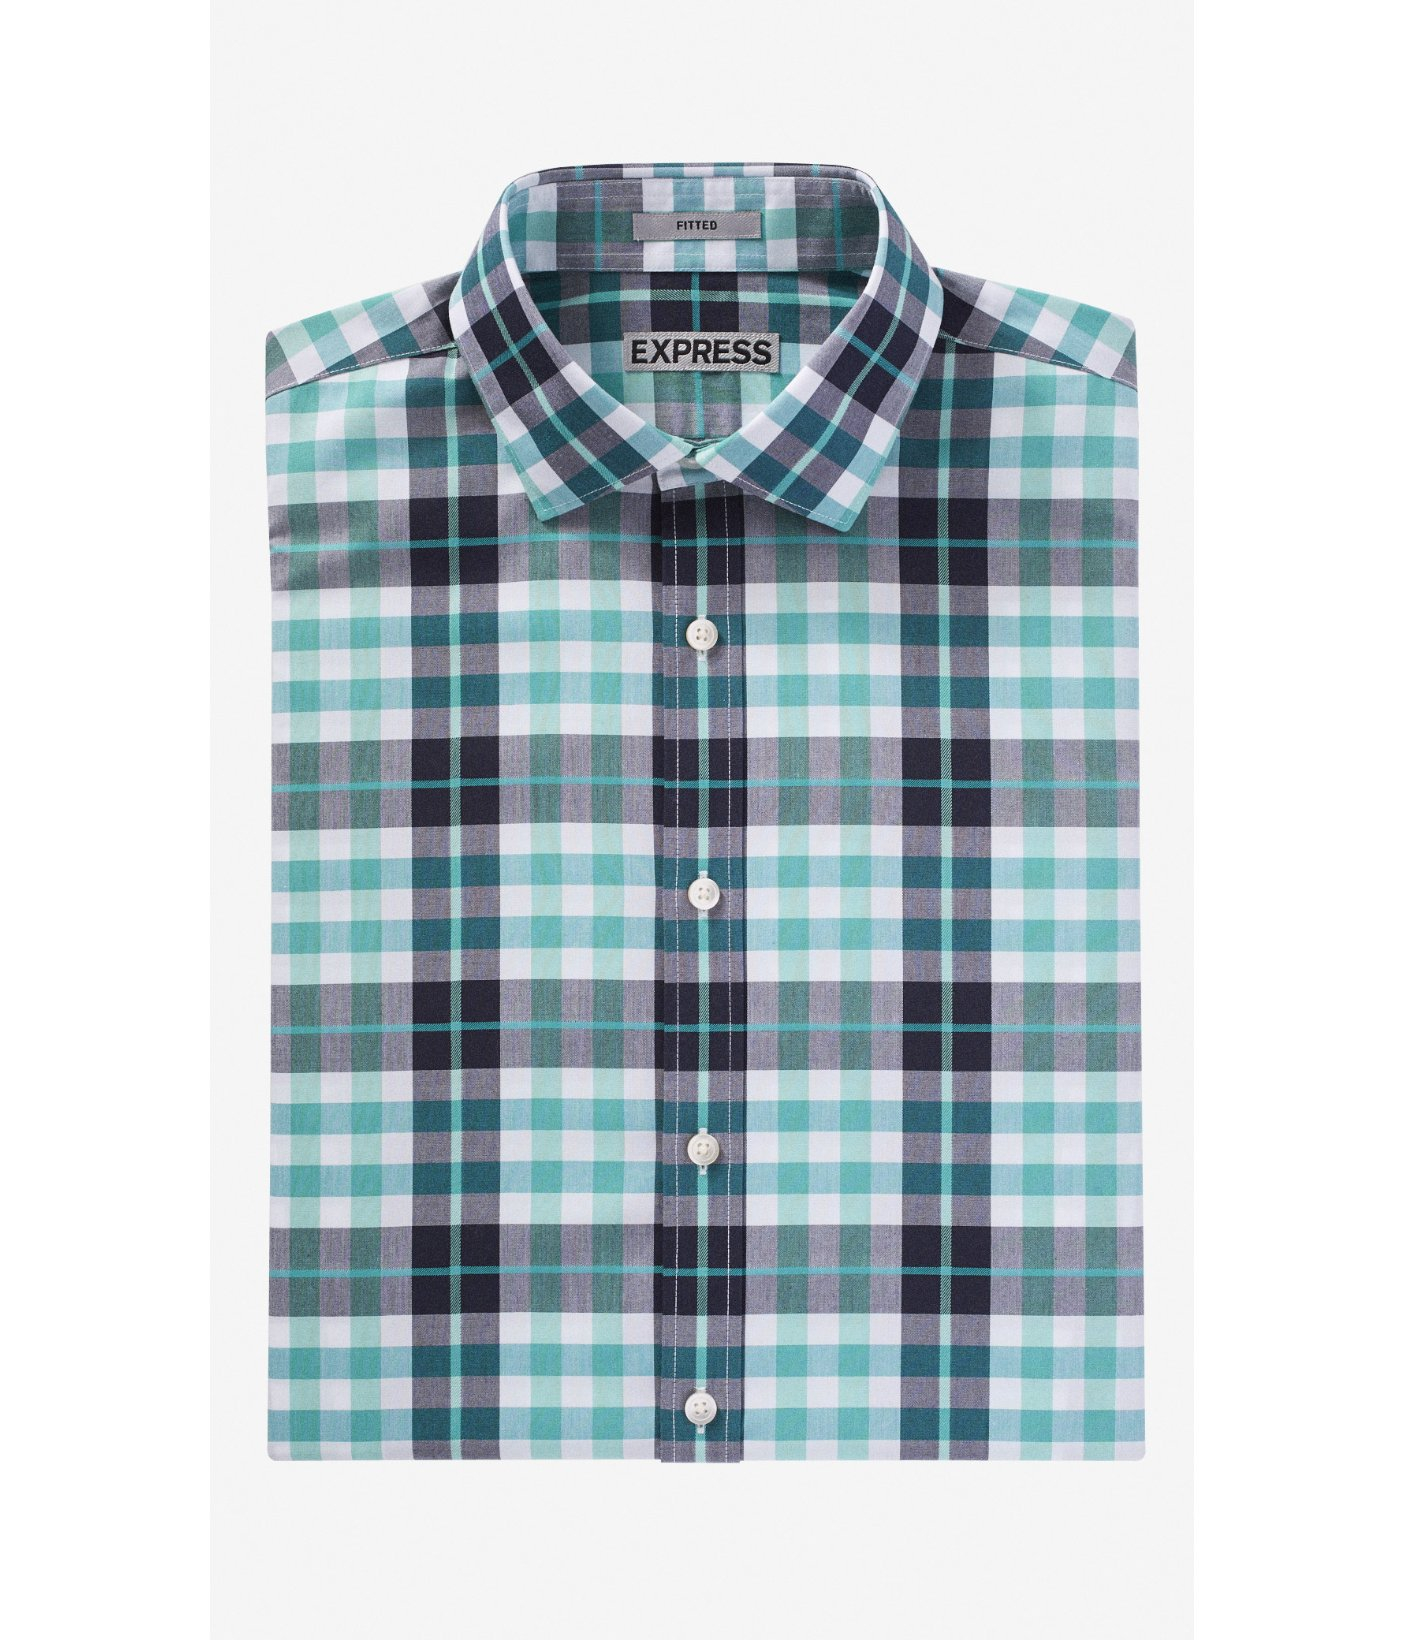 lyst express fitted non iron plaid shirt in green for men